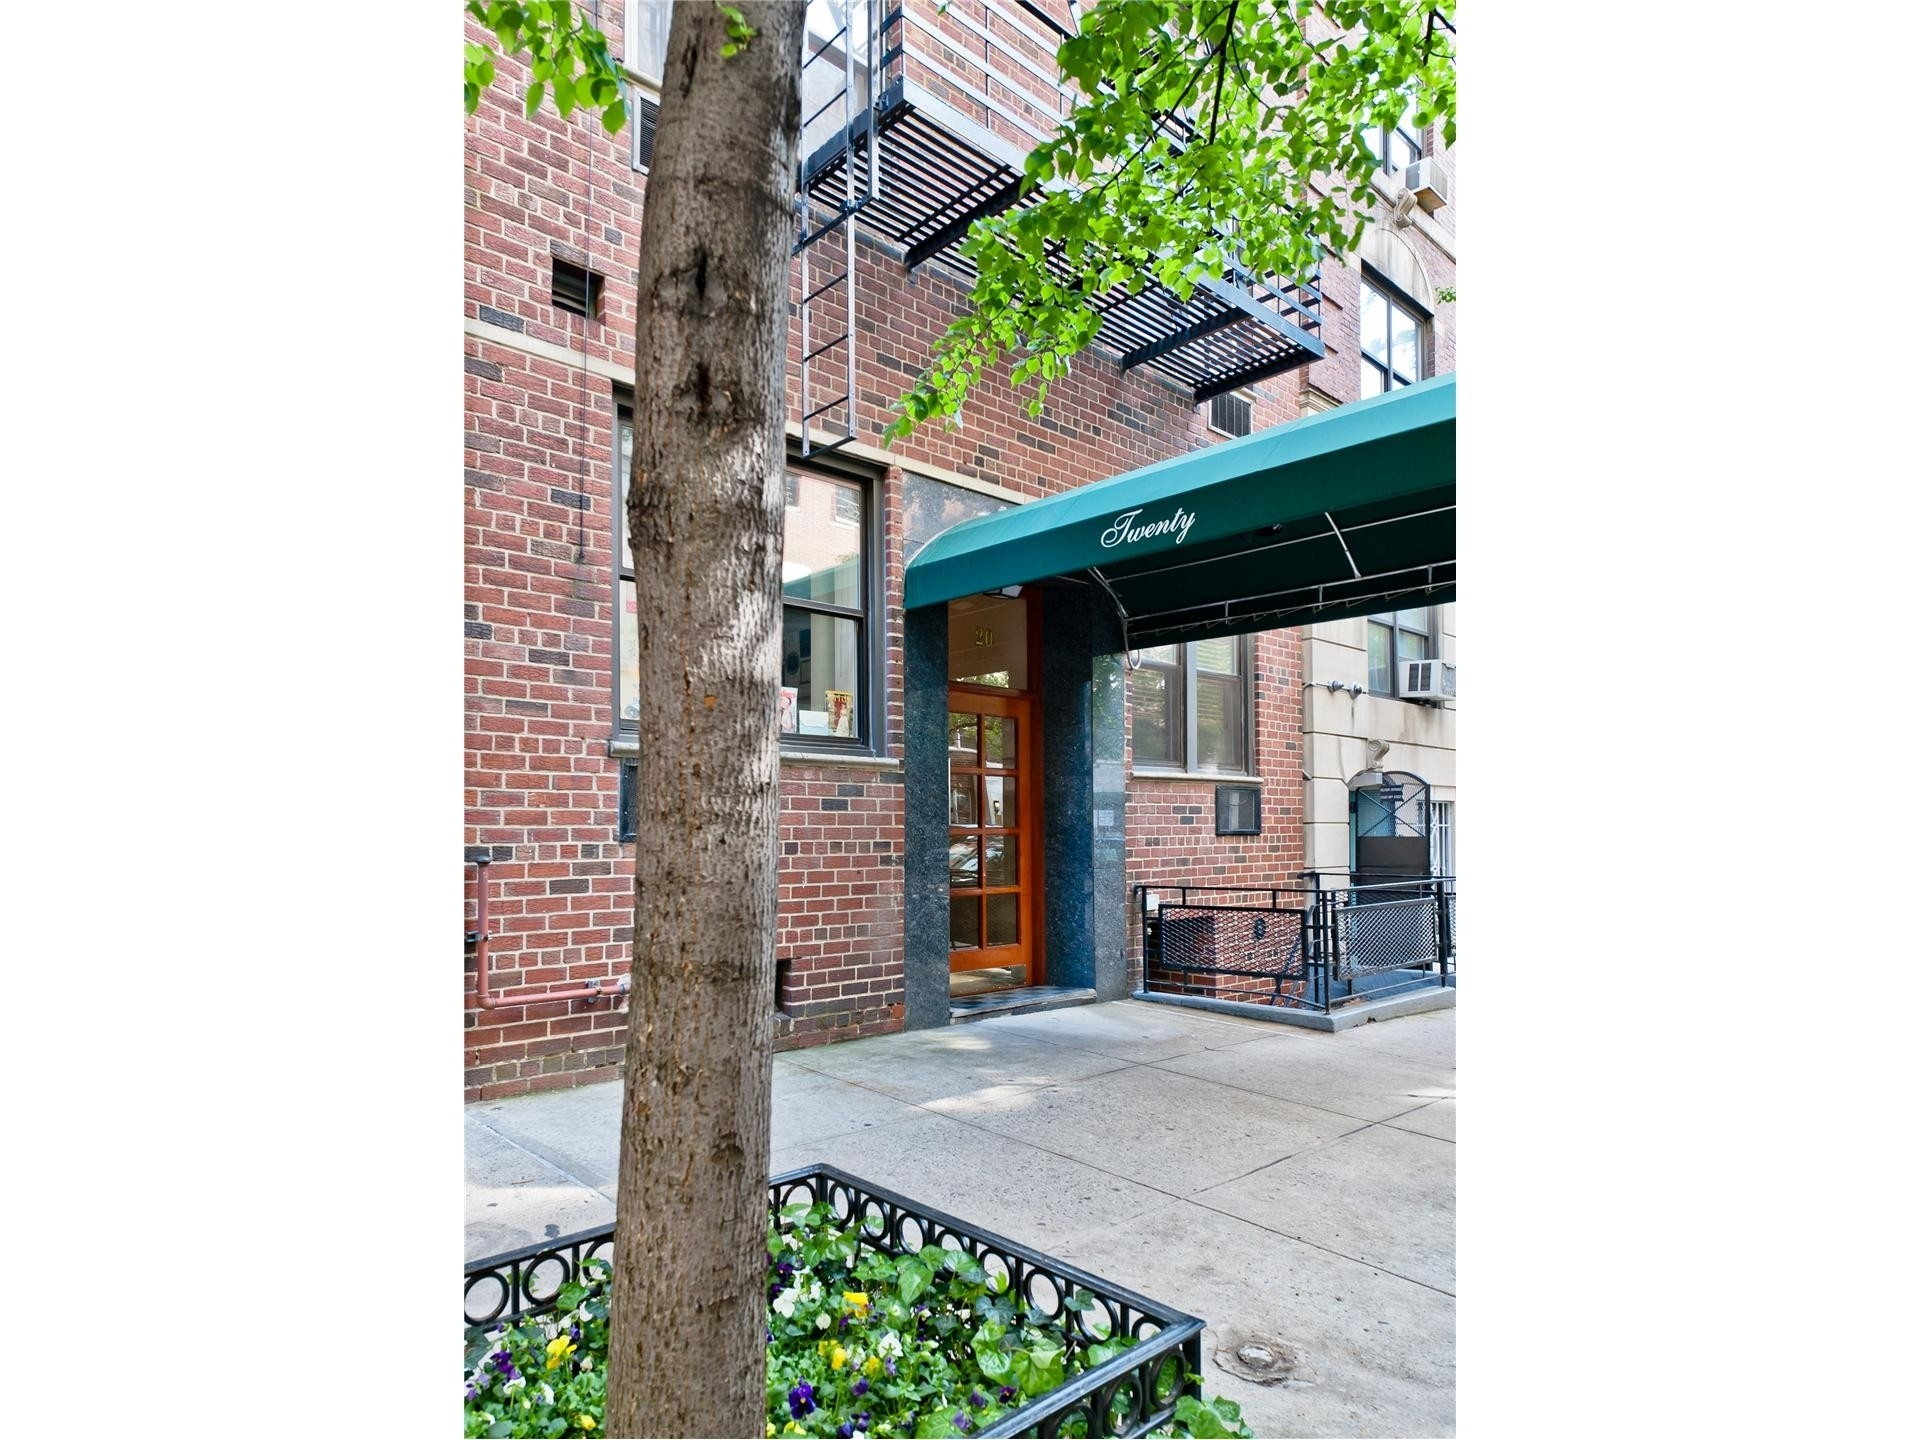 11. Co-op Properties for Sale at Cannon Point North, 25 SUTTON PL S, 11B Sutton Place, New York, NY 10022